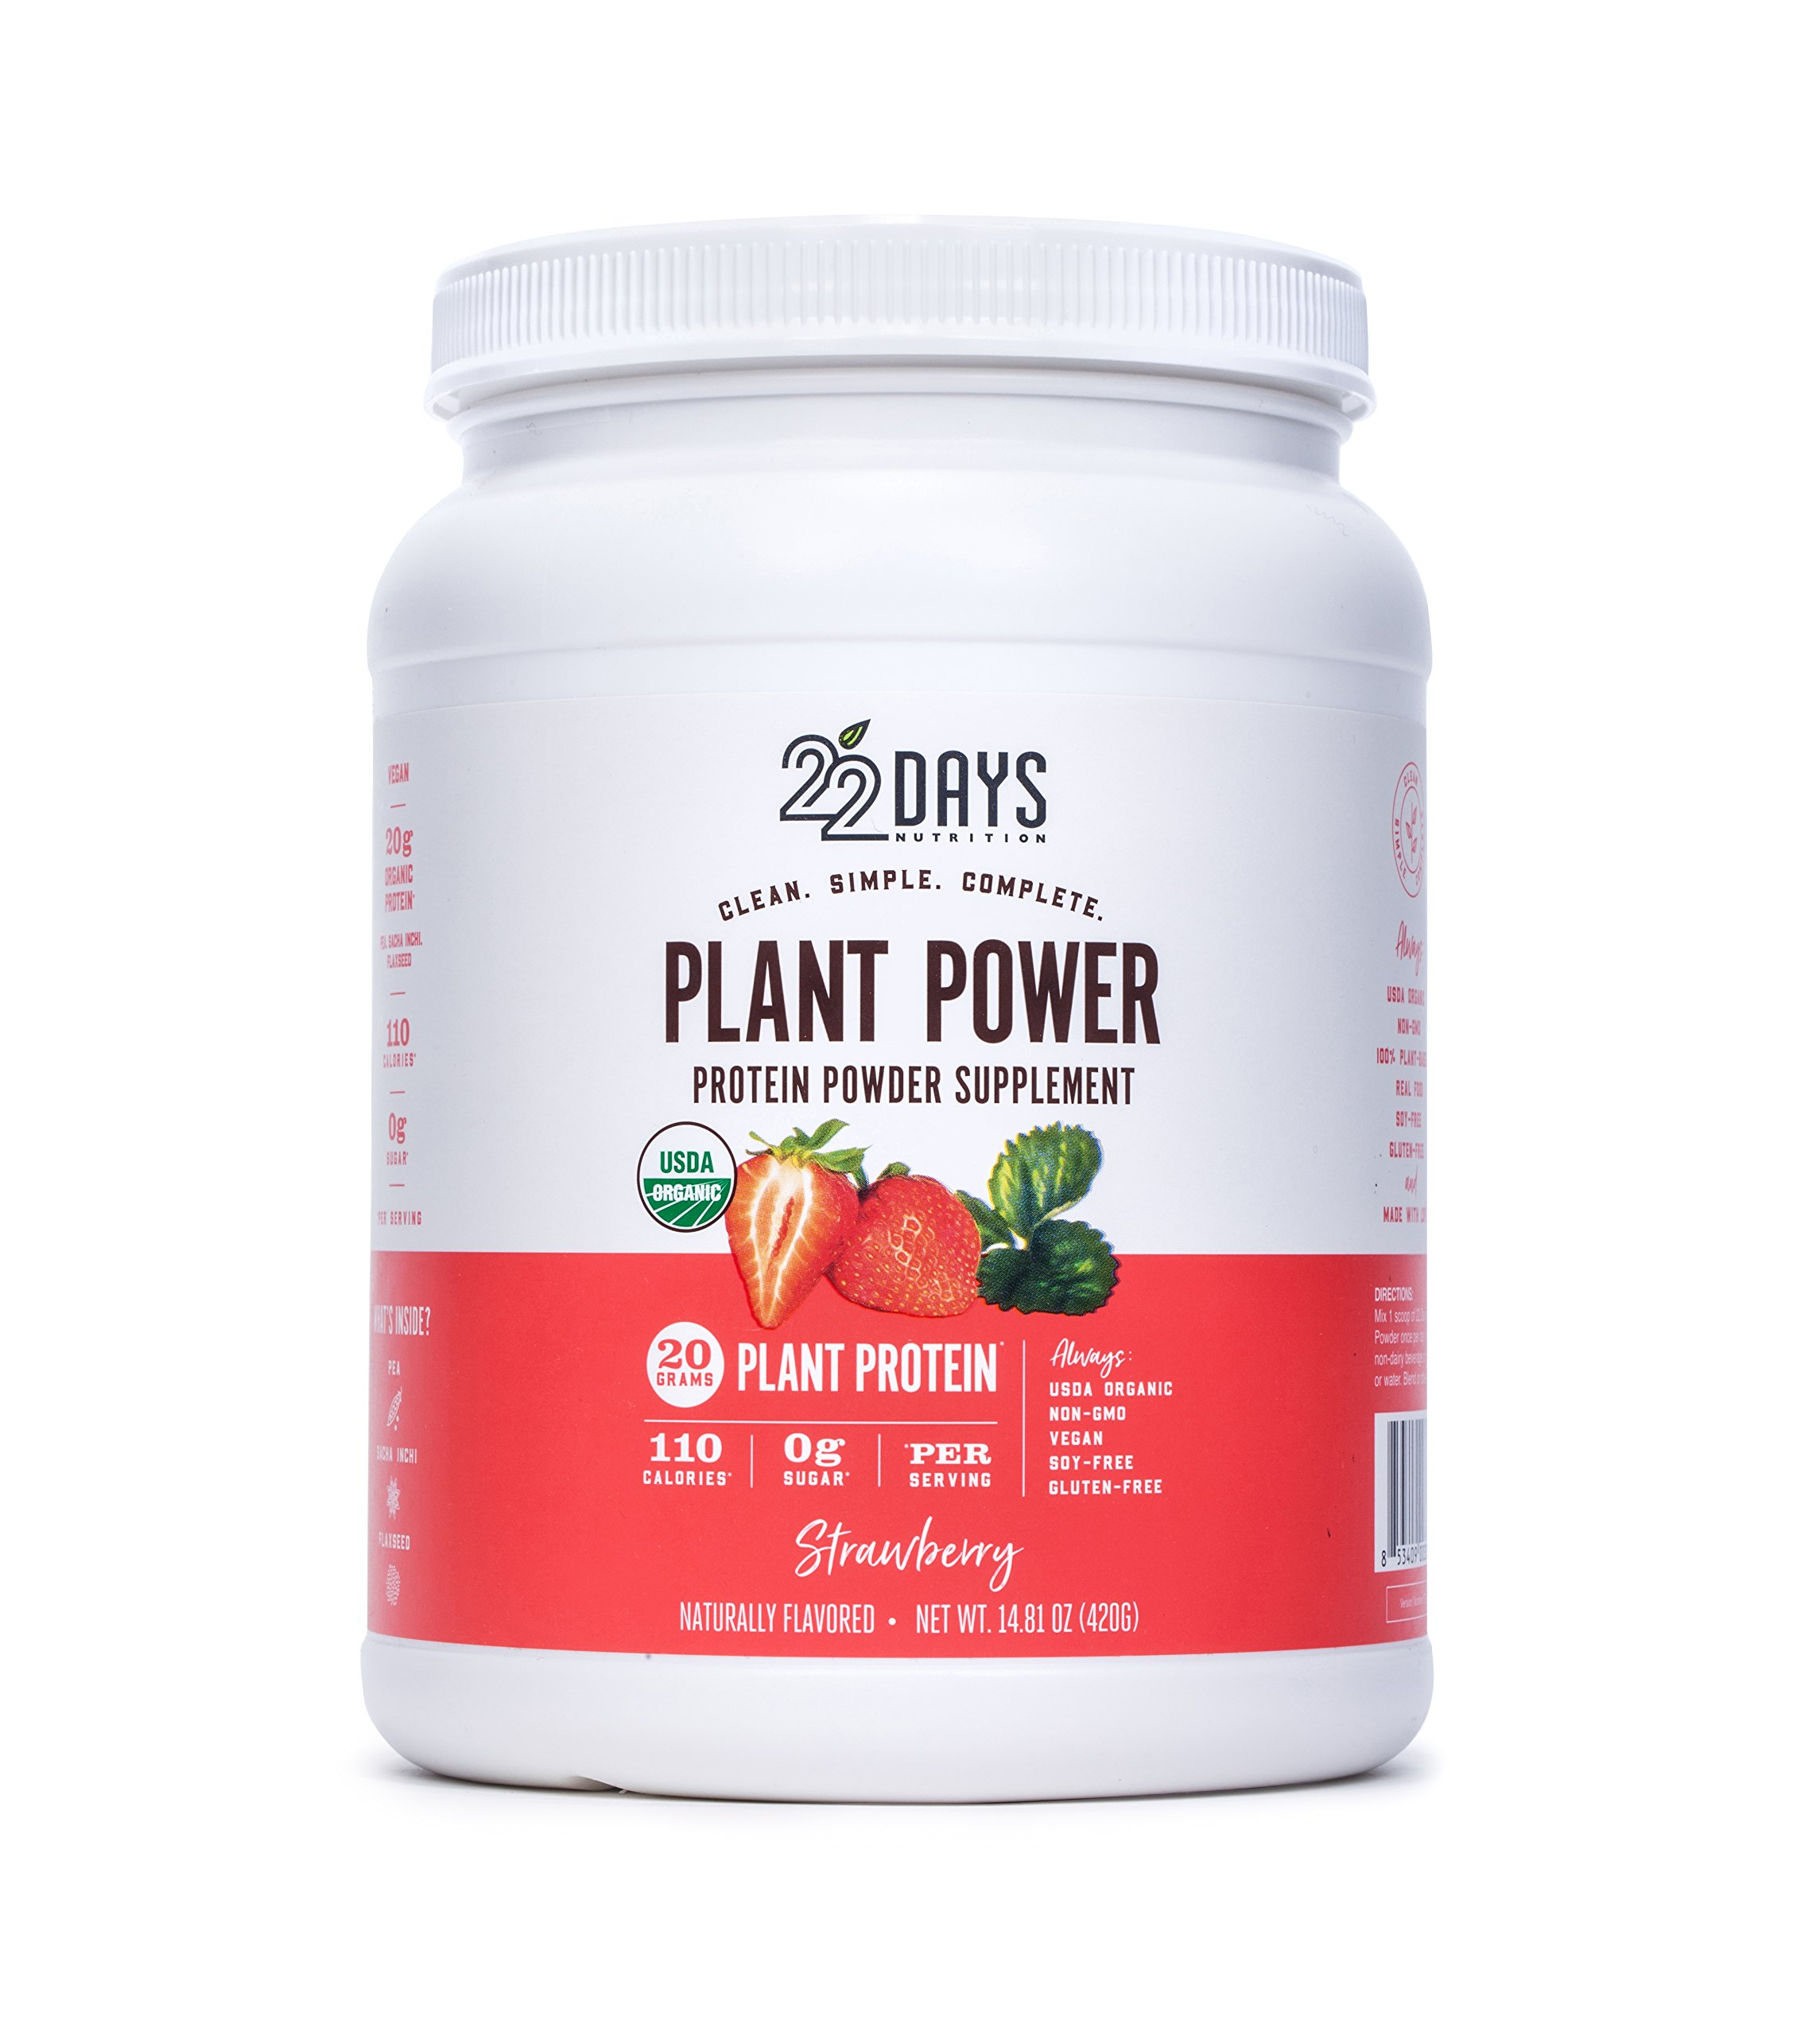 22 Days Nutrition Organic Protein Powder, Strawberry, 14.81 Ounce | Gluten Free, Vegan- Pea, Flax, and Sacha Inchi- Plant Based Protein Powder (20g) - No Added Sugar, Naturally Sweetened with Stevia